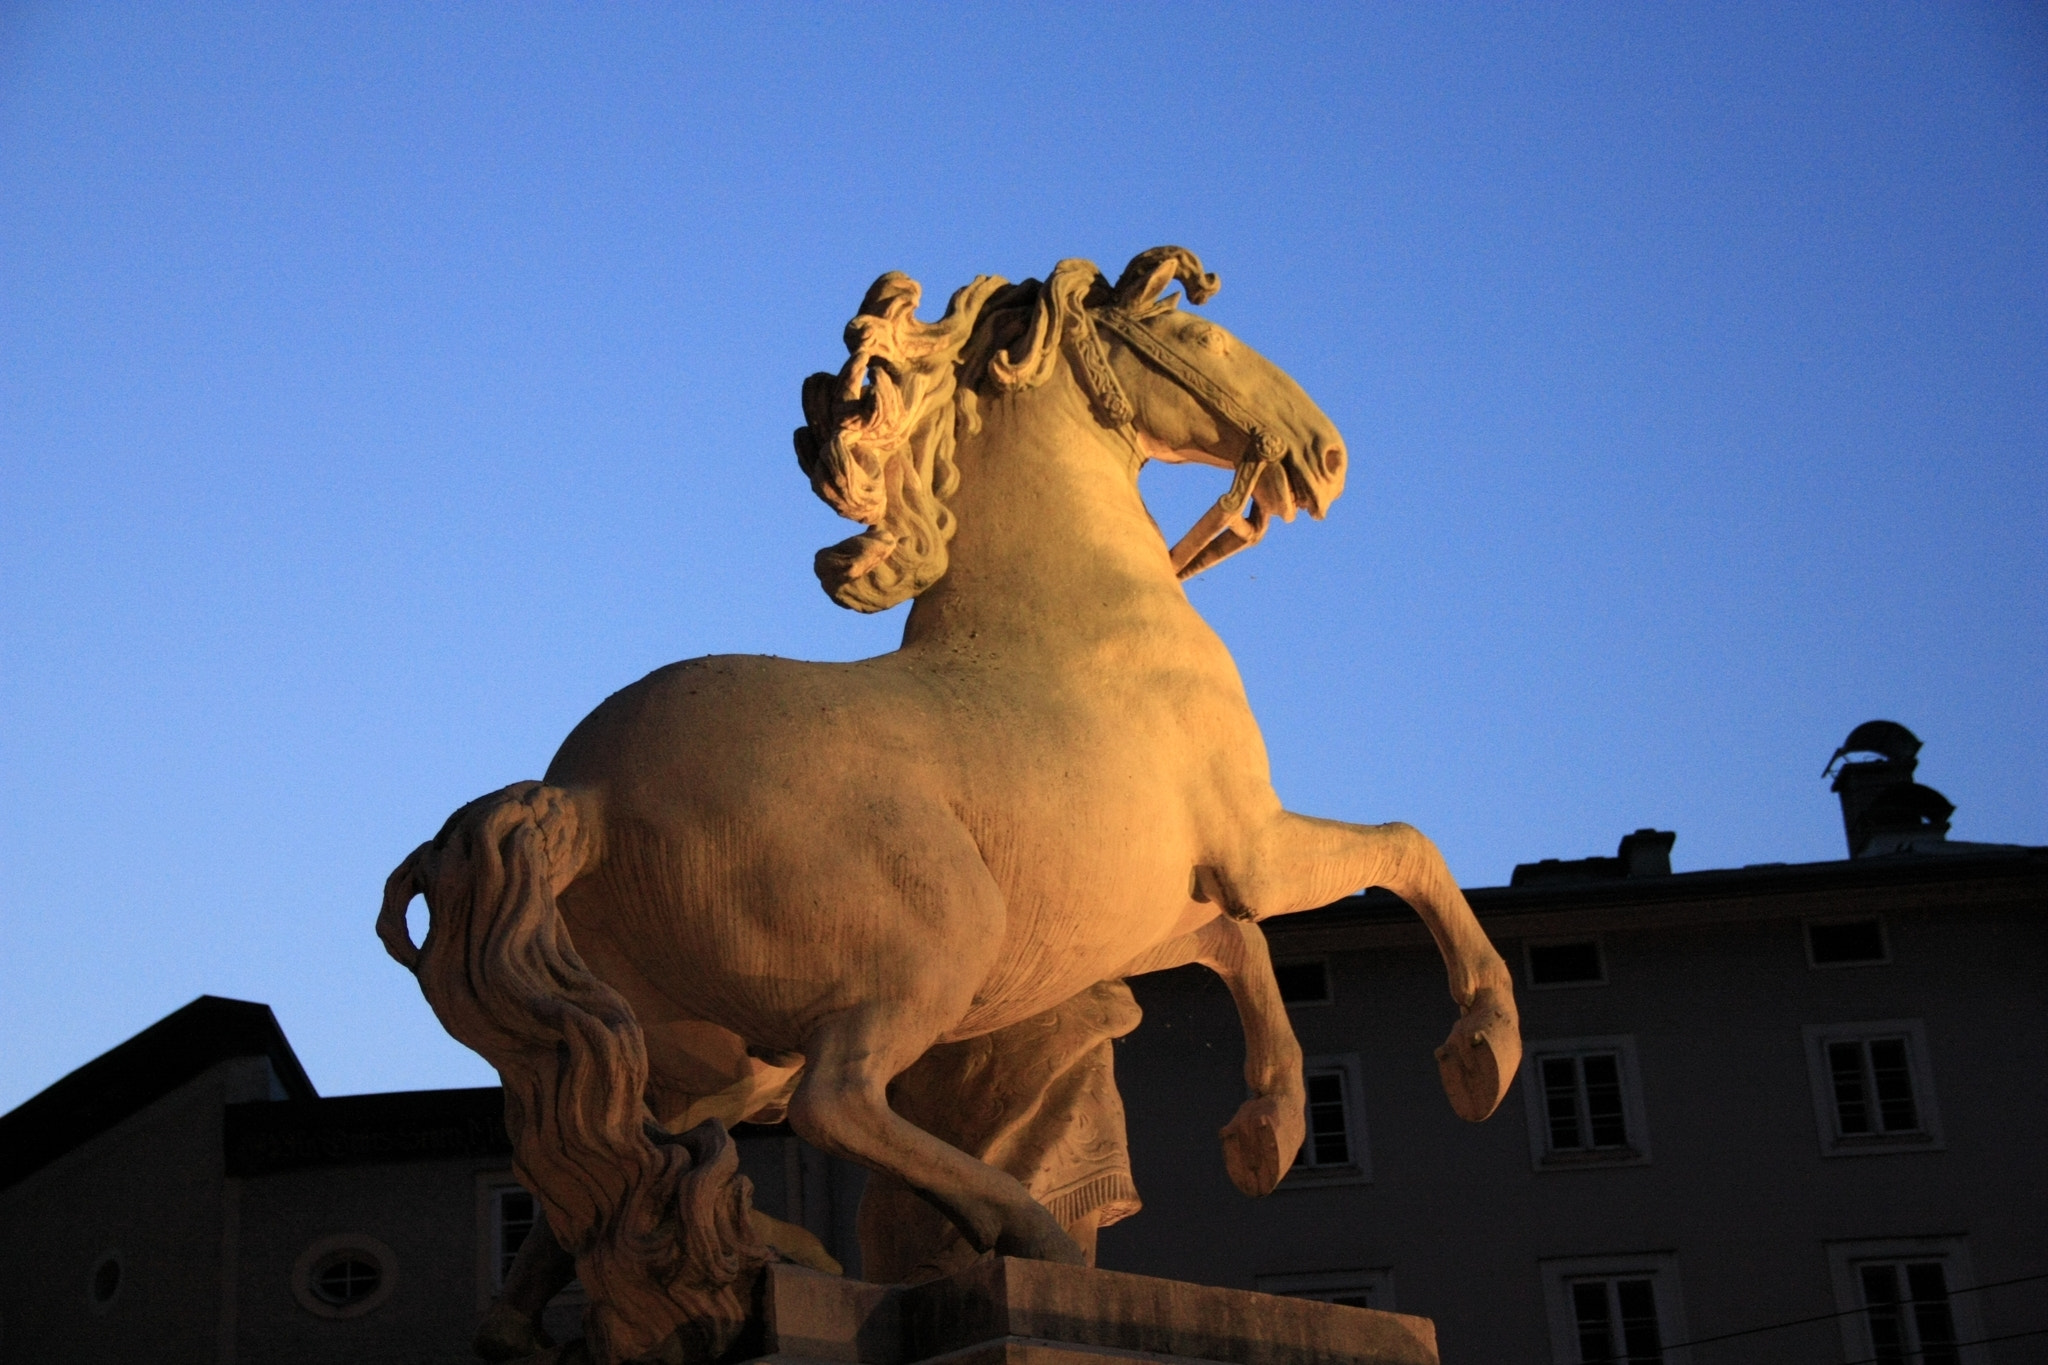 Photograph Horse by Rubens Hardt on 500px